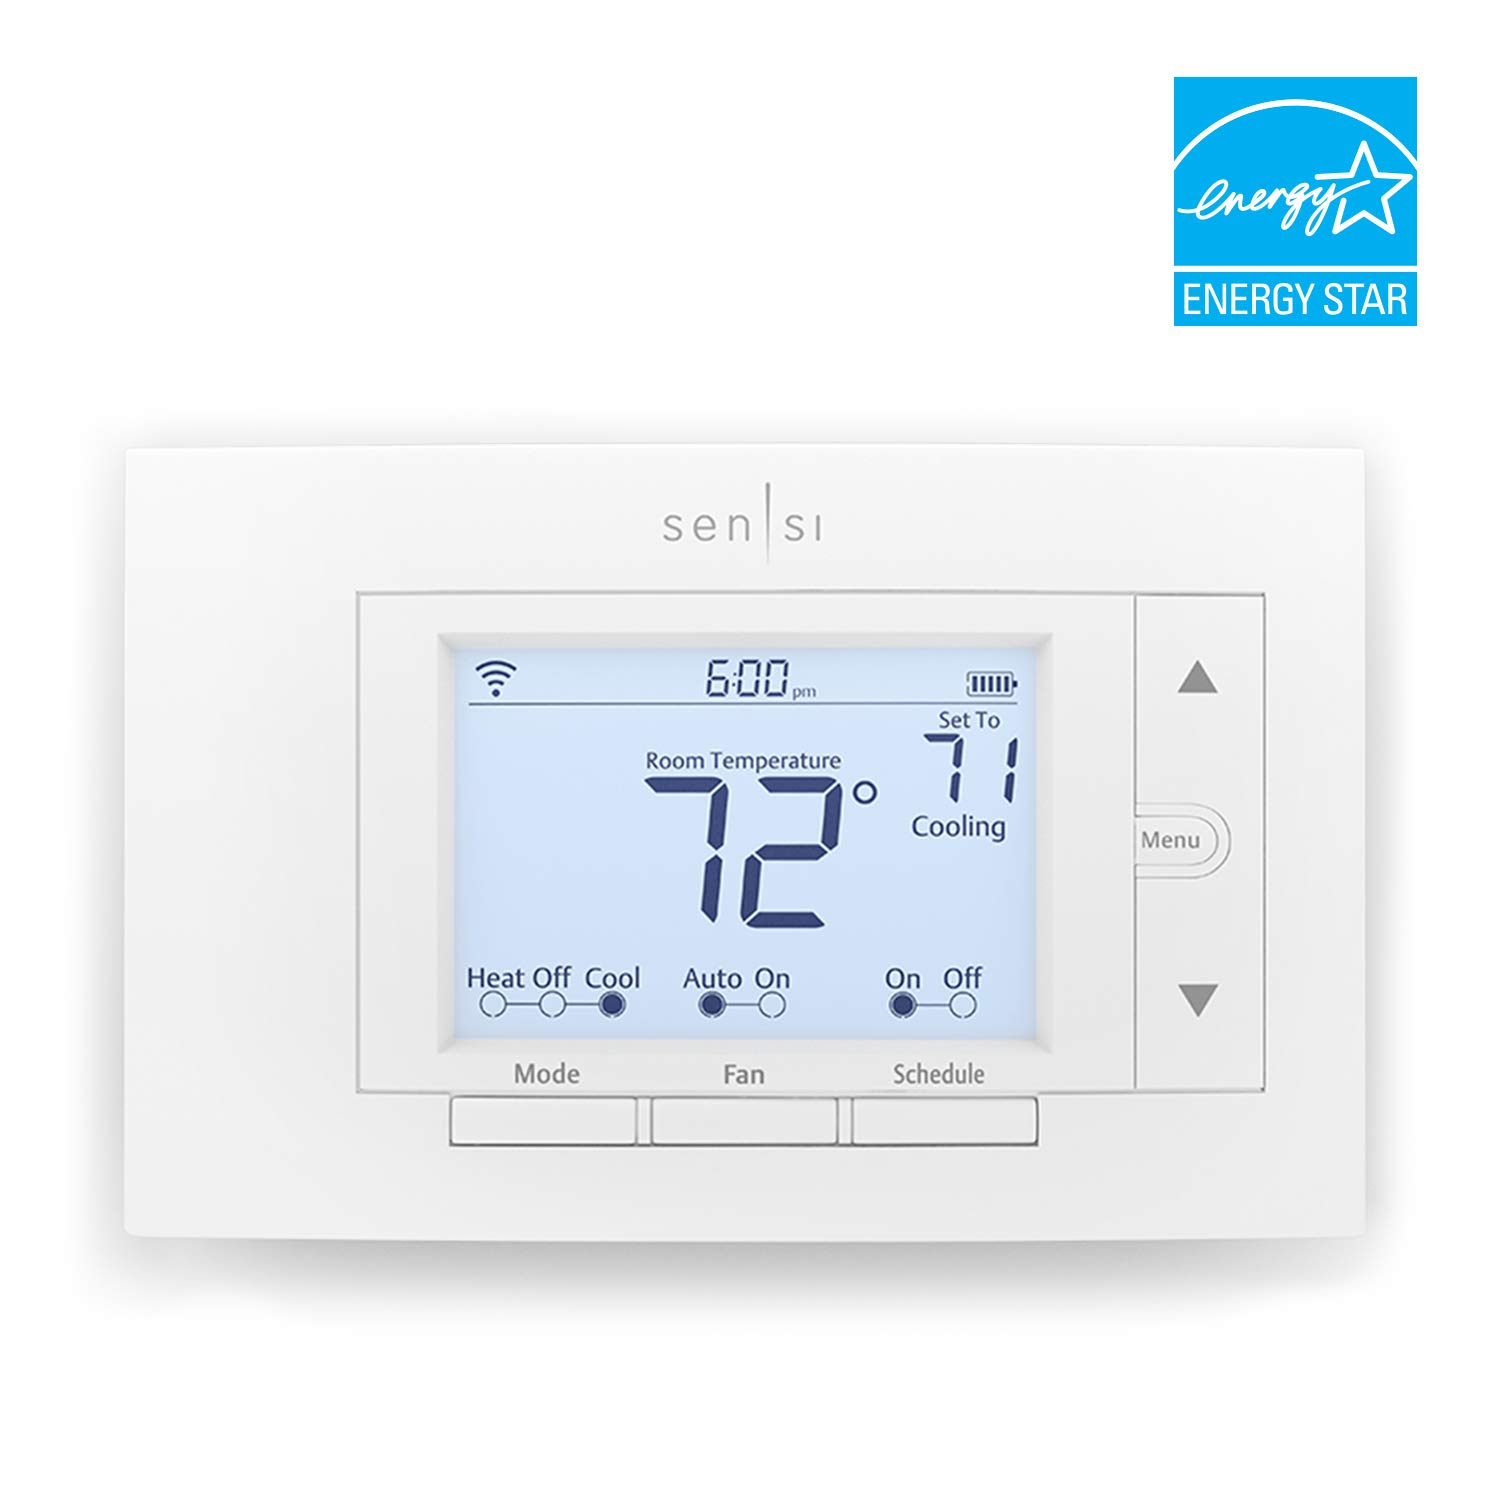 Emerson Sensi Wi-Fi Smart Thermostat for Smart Home, DIY Version, Works With Alexa, Energy Star Certified by Emerson Thermostats